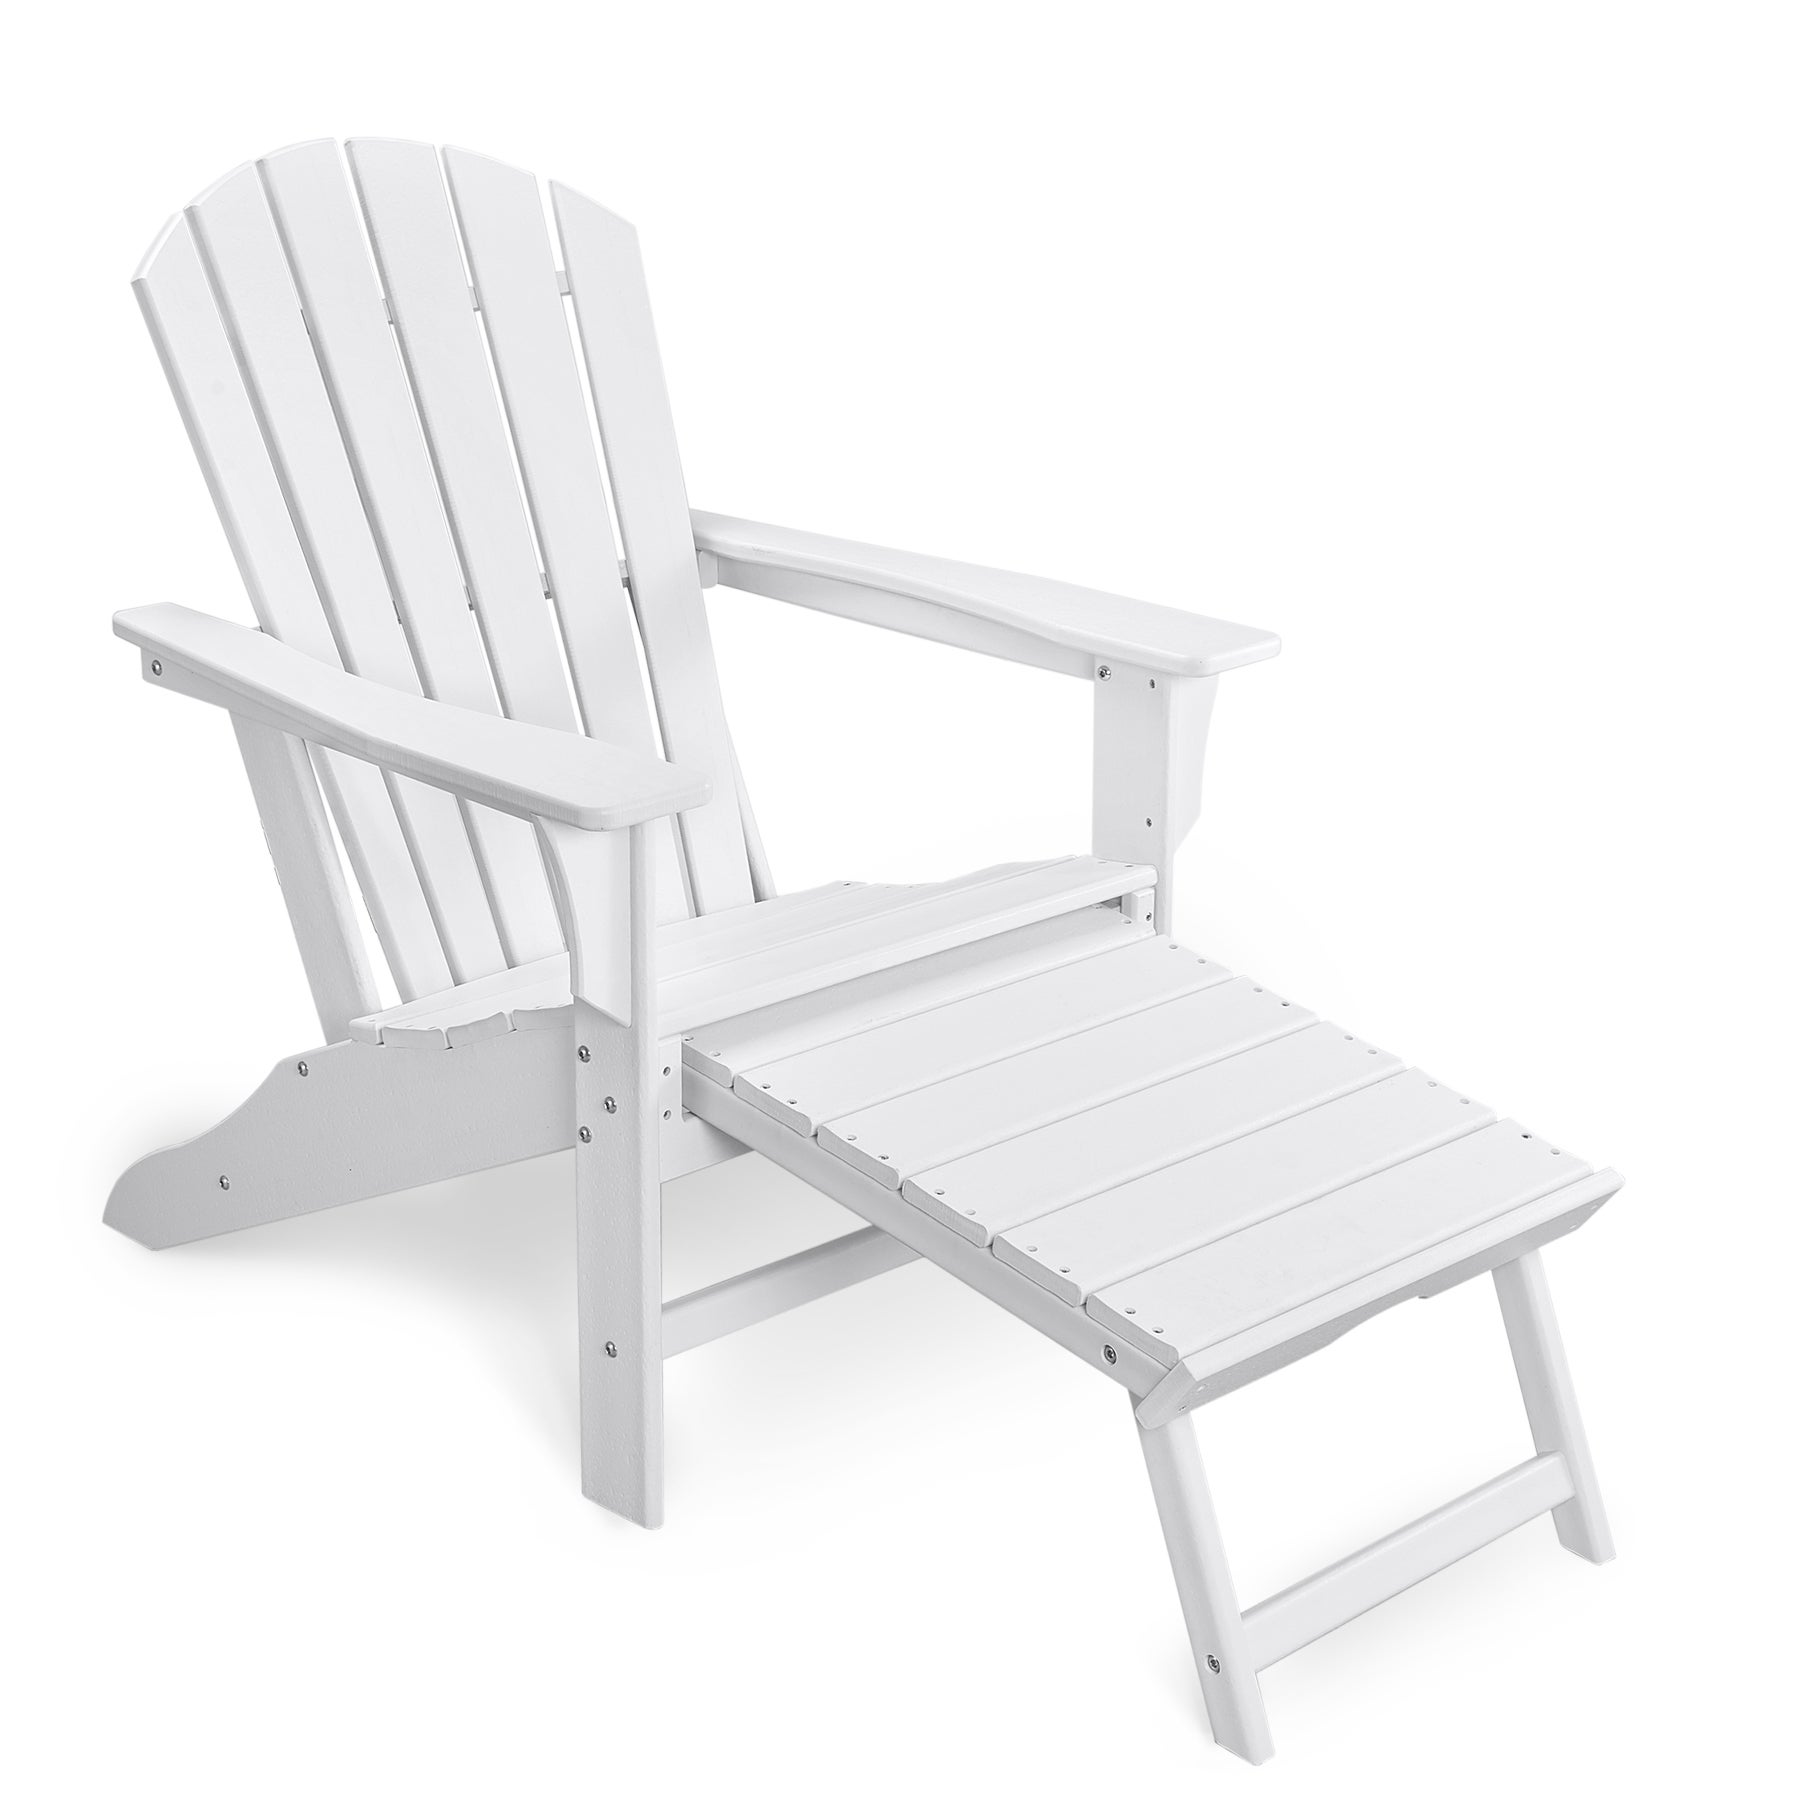 EHOMMATE HDPE Outdoor Adirondack Chair with Footrest White